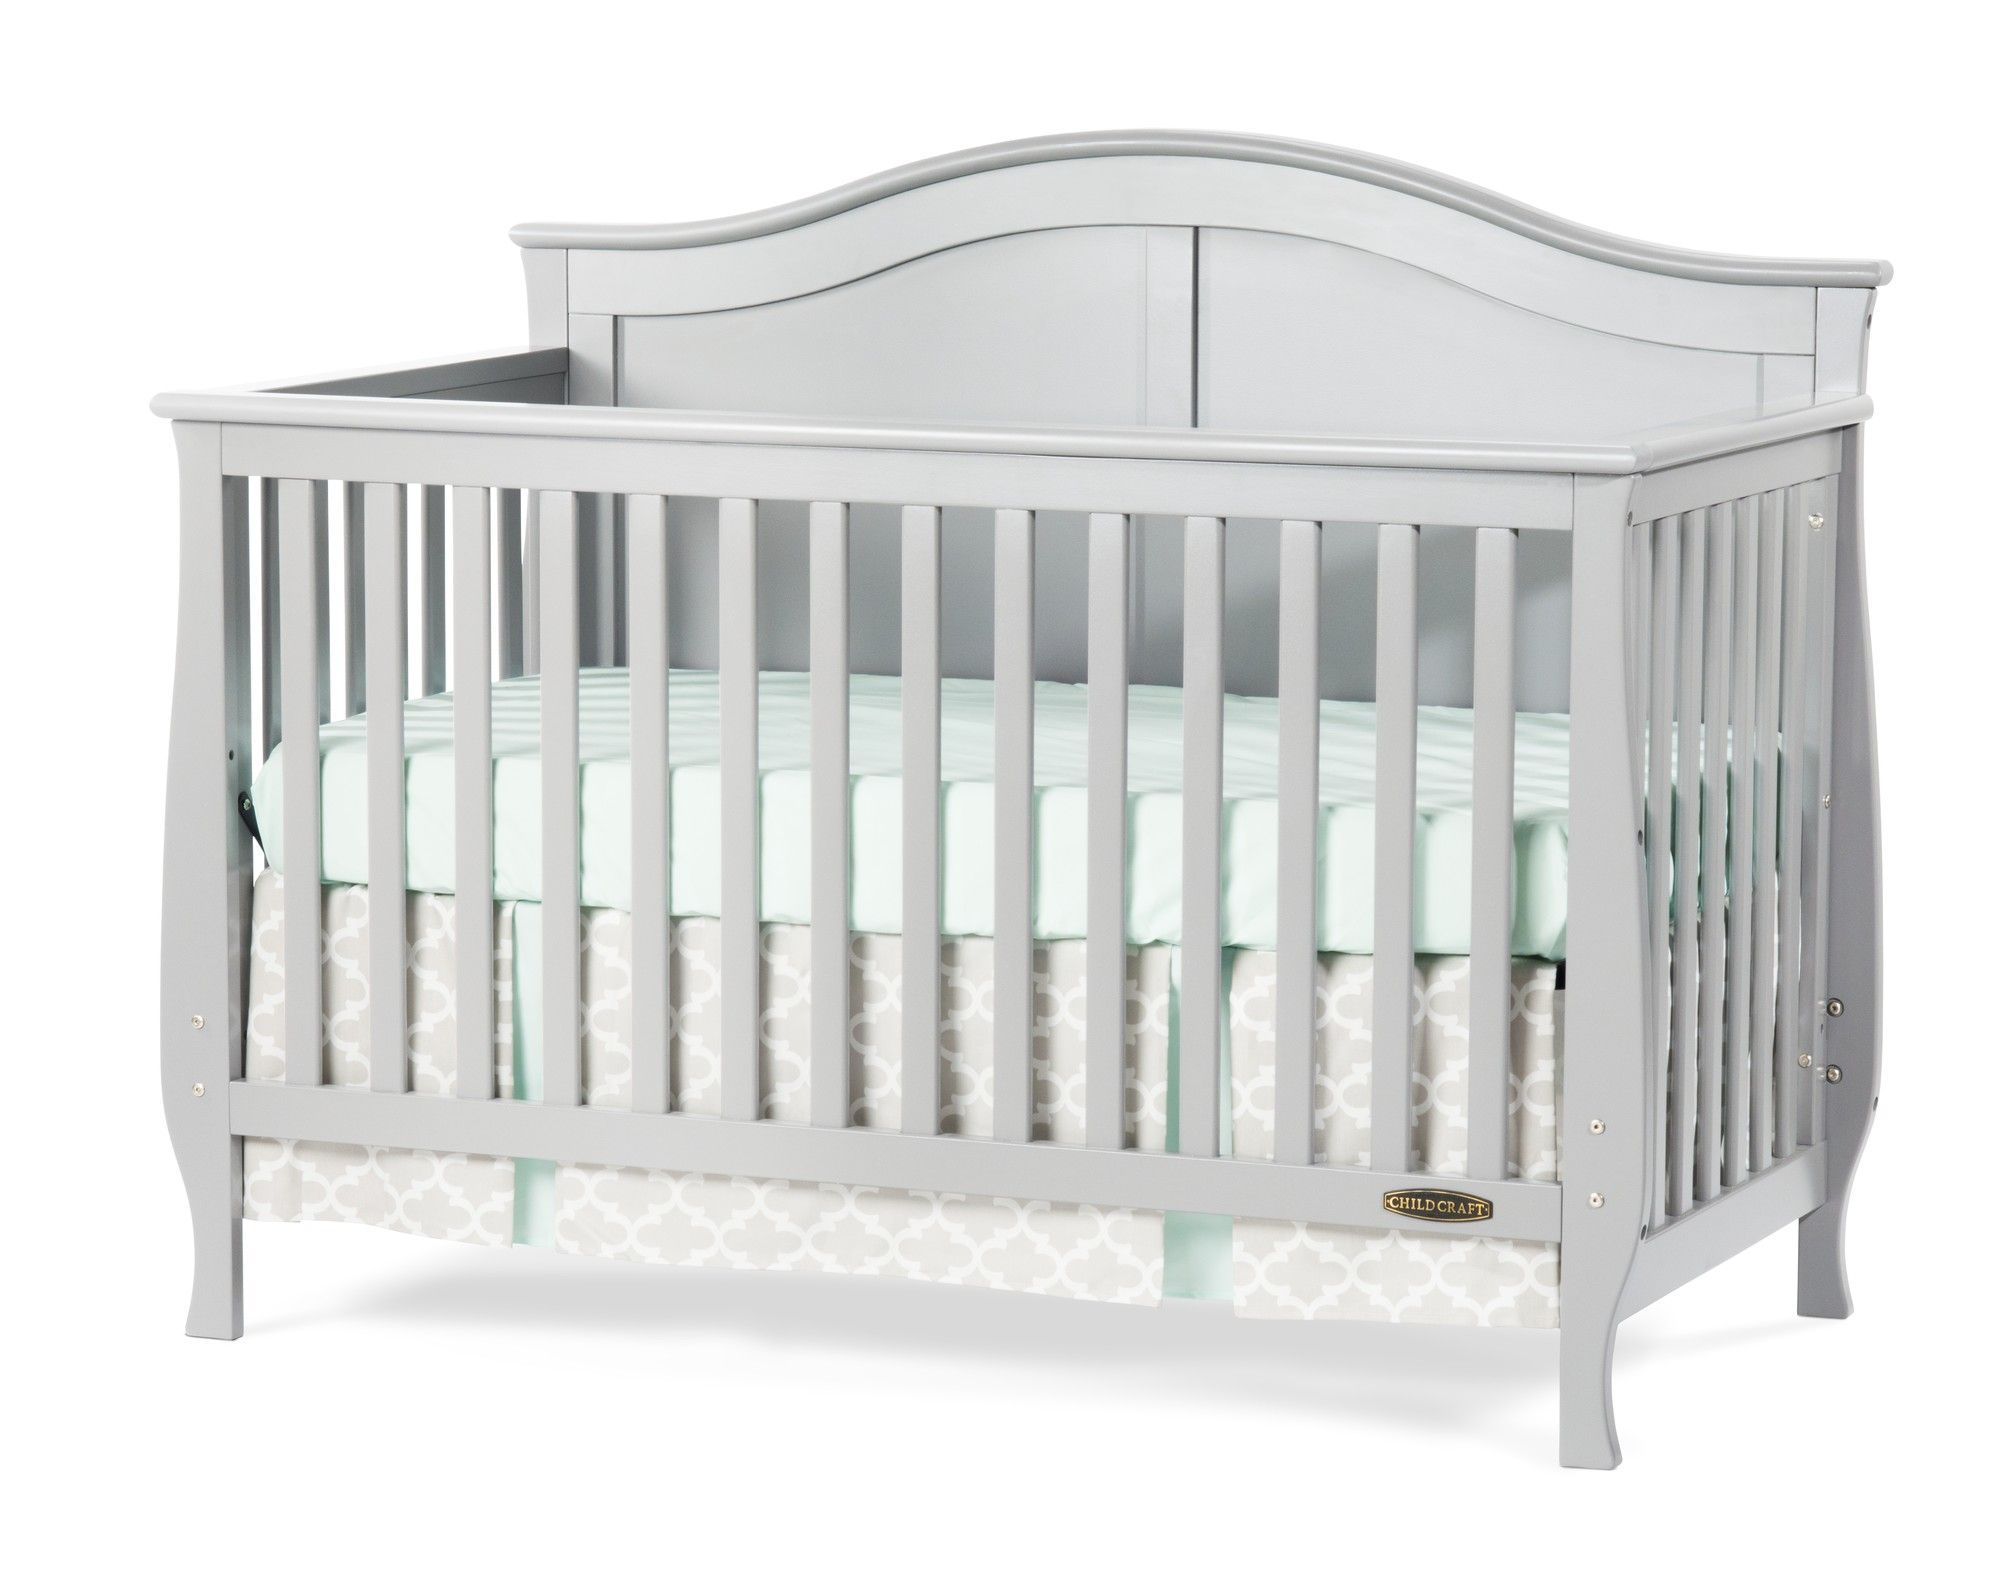 Camden 4 in 1 convertible crib nursery pinterest - Baby jungenzimmer ...